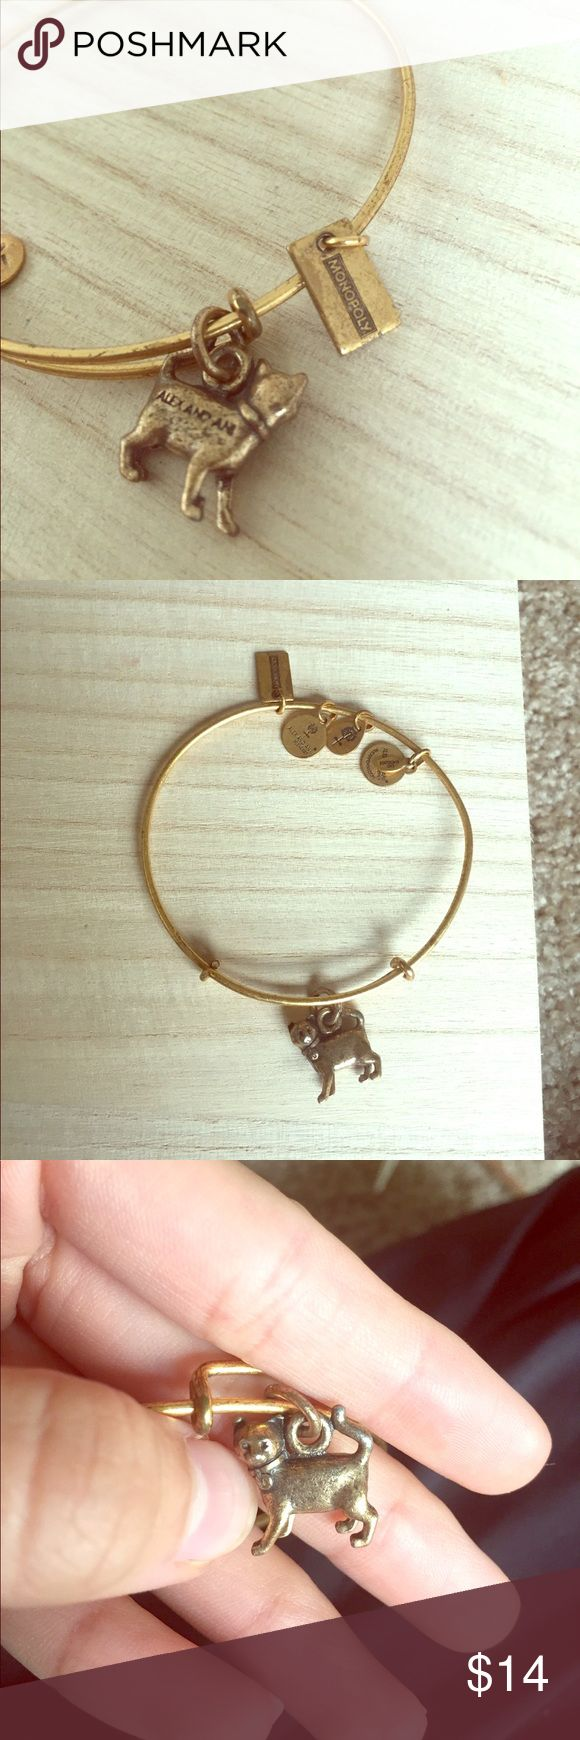 Alex & Ani Monopoly Cat Bangle Alex & Ani Monopoly cat bangle in gold. Visible wear (pictured), has been bent to fit my wrist, but is in good condition! 🐱 Alex & Ani Jewelry Bracelets